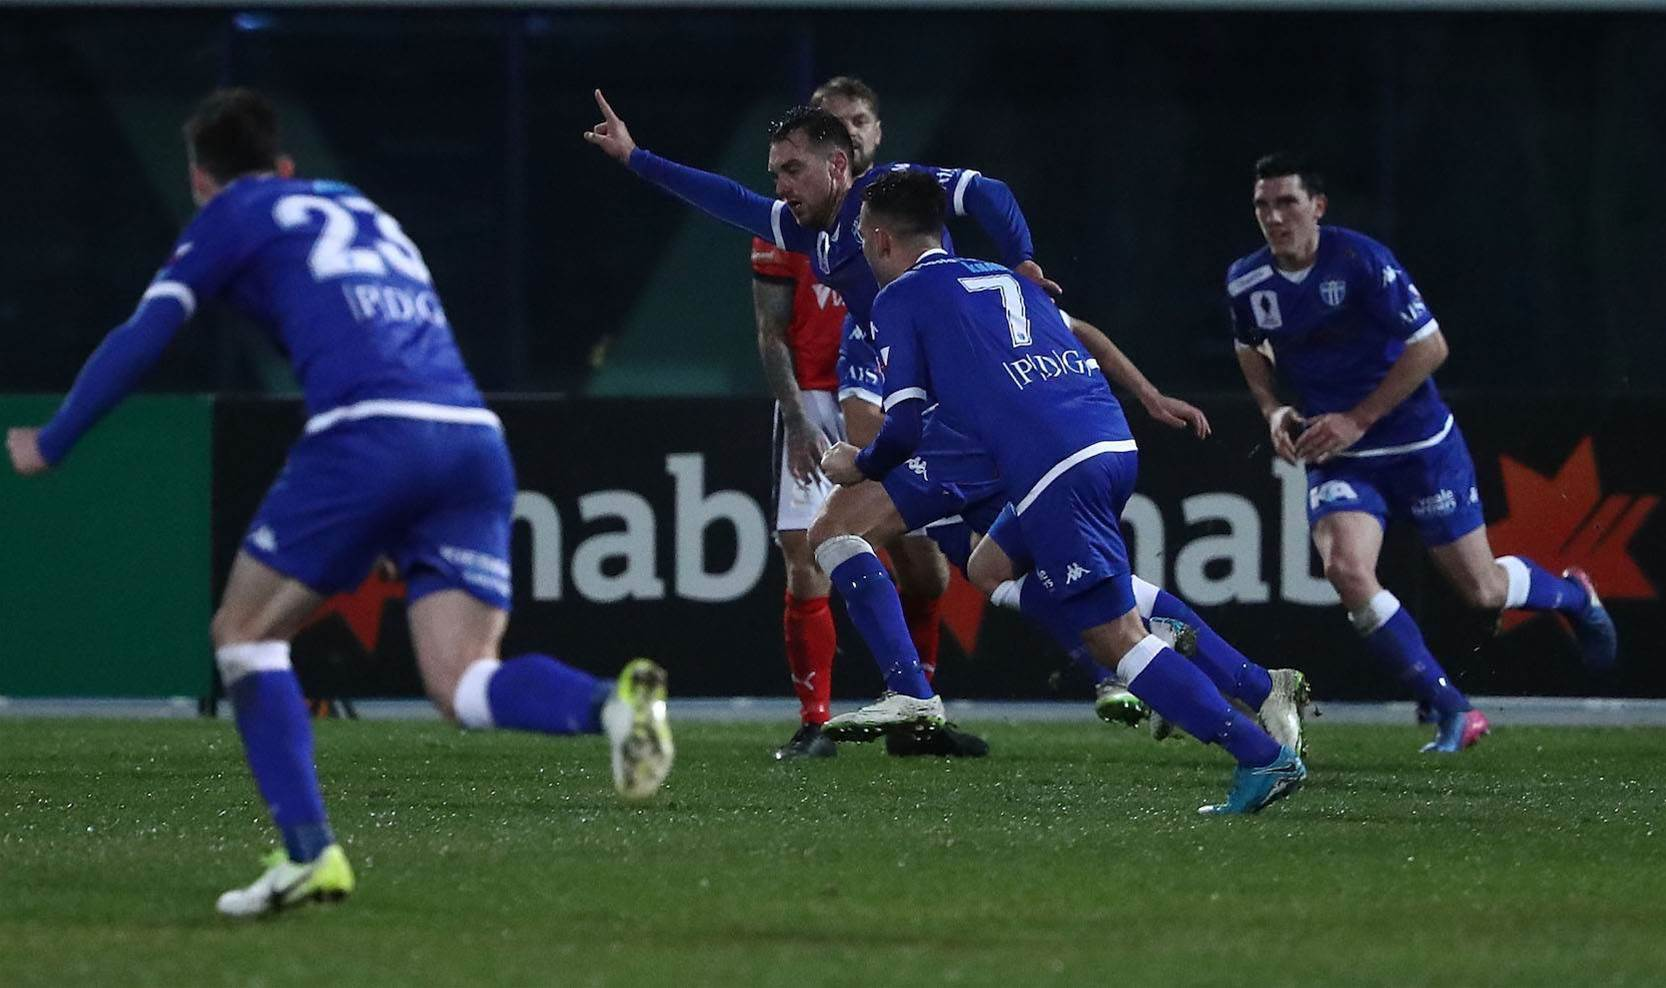 FFA Cup wrap: South net last-gasp winner